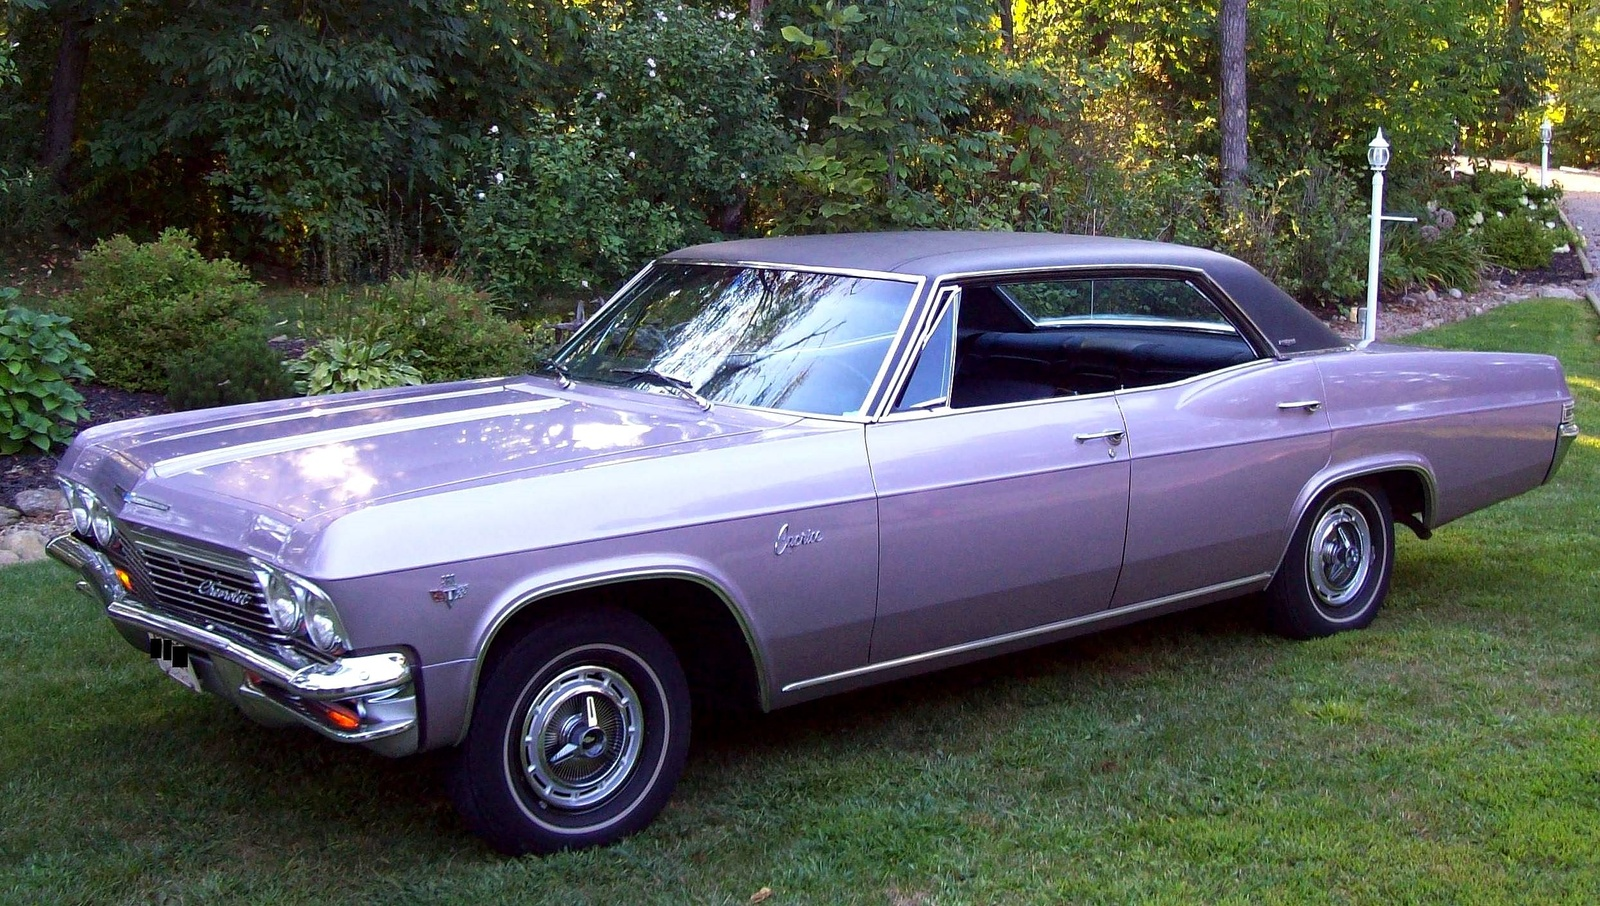 1996 Chevy Impala Ss For Sale 1965 Chevrolet Caprice, 1965 Caprice Front and Side, exterior